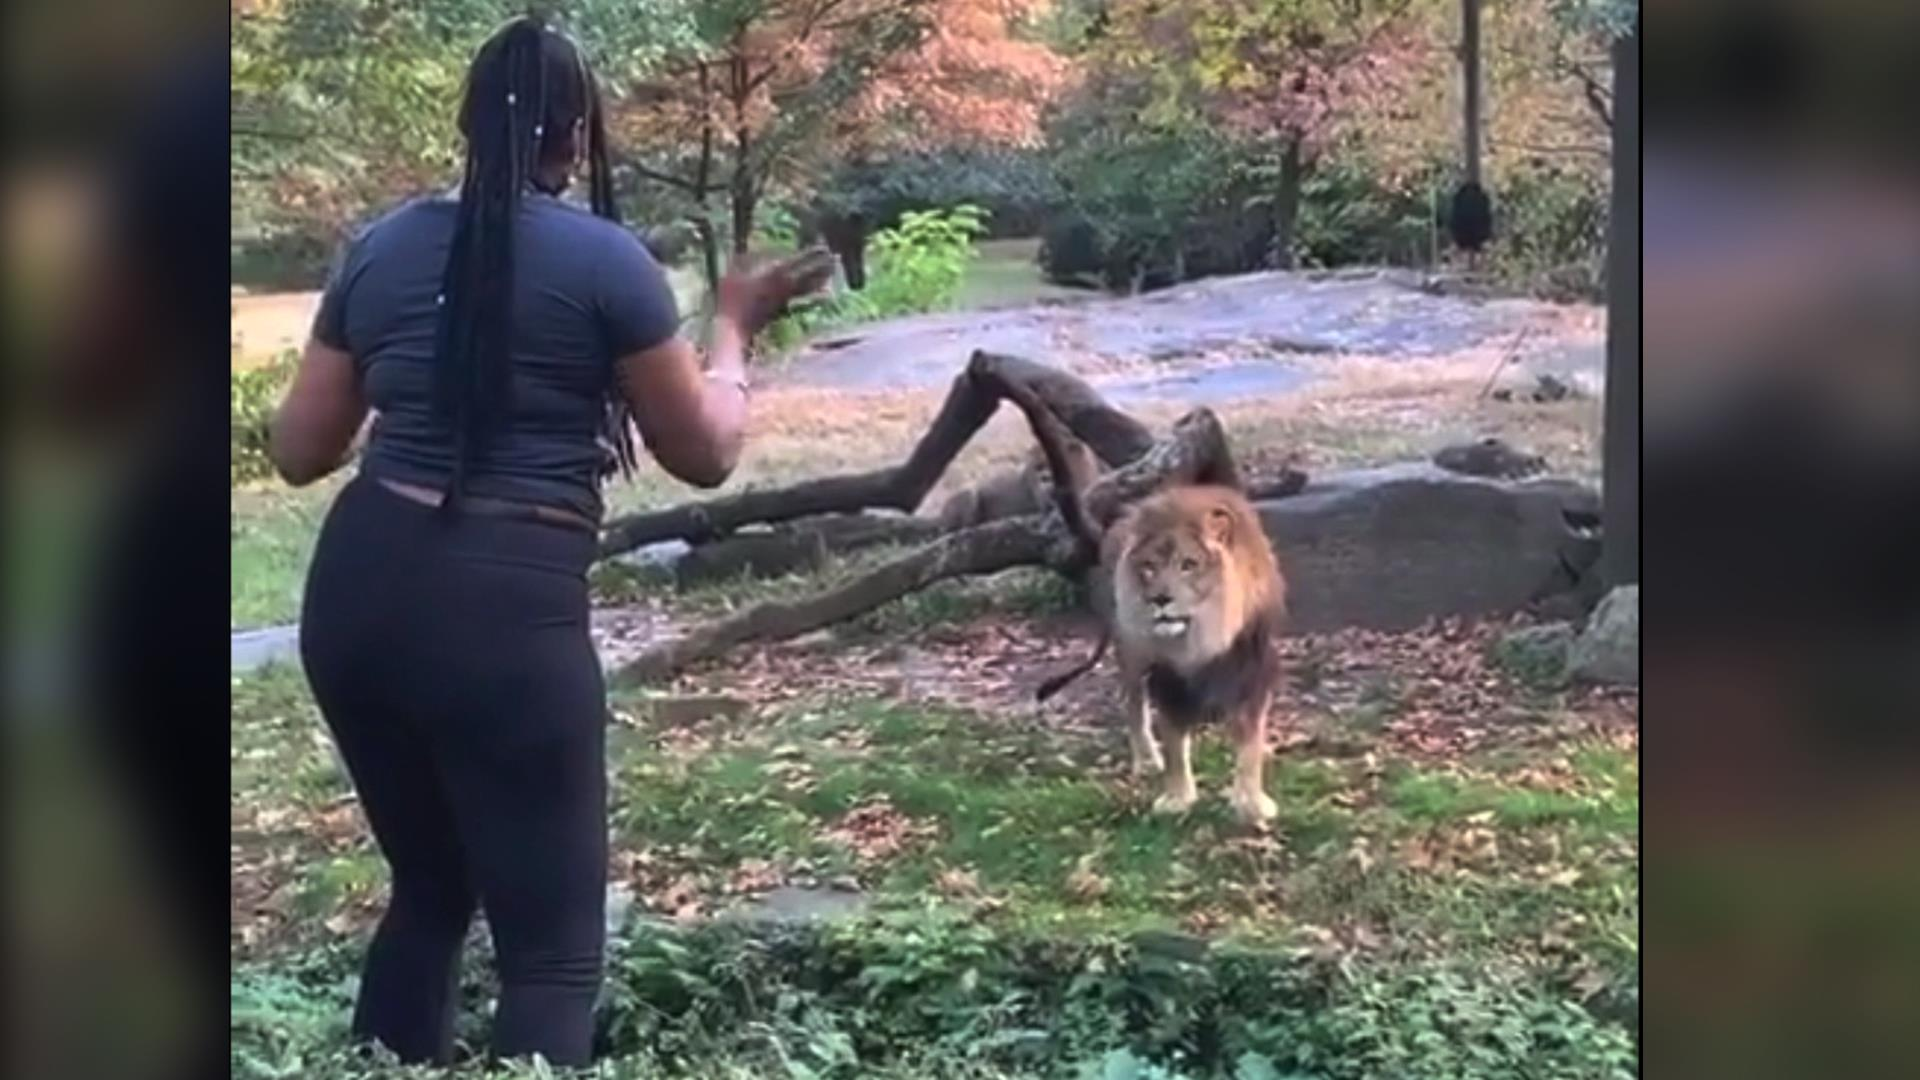 Woman climbs into lion exhibit at Bronx Zoo and taunts animal, video shows